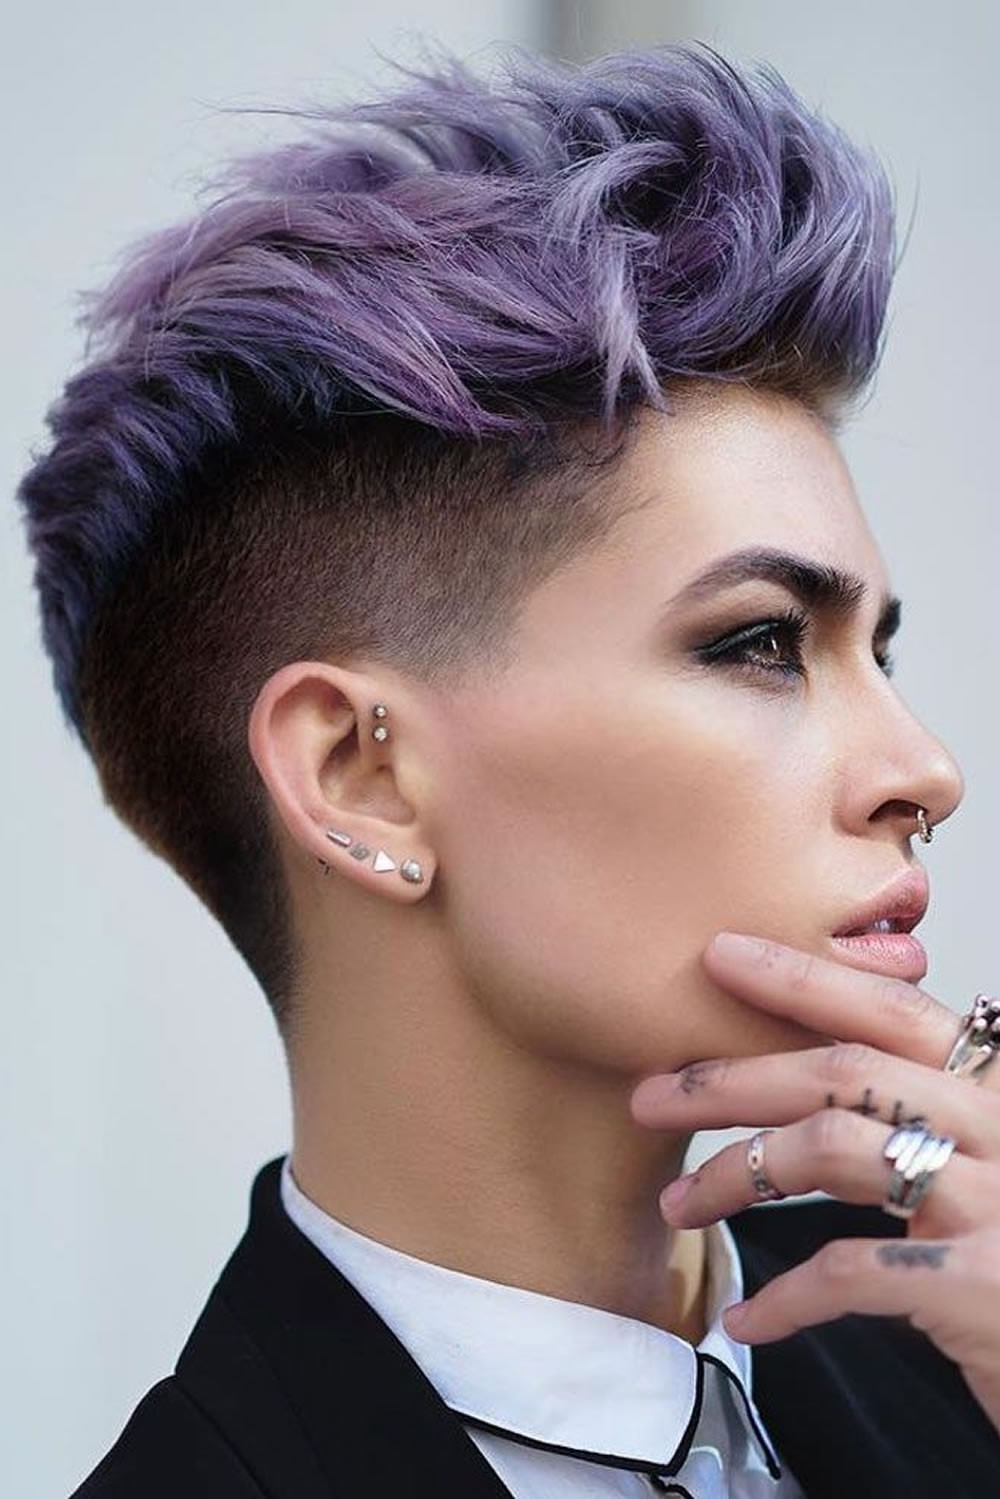 Hairstyles For Undercut  15 Ideas of Undercut Pixie Hairstyles